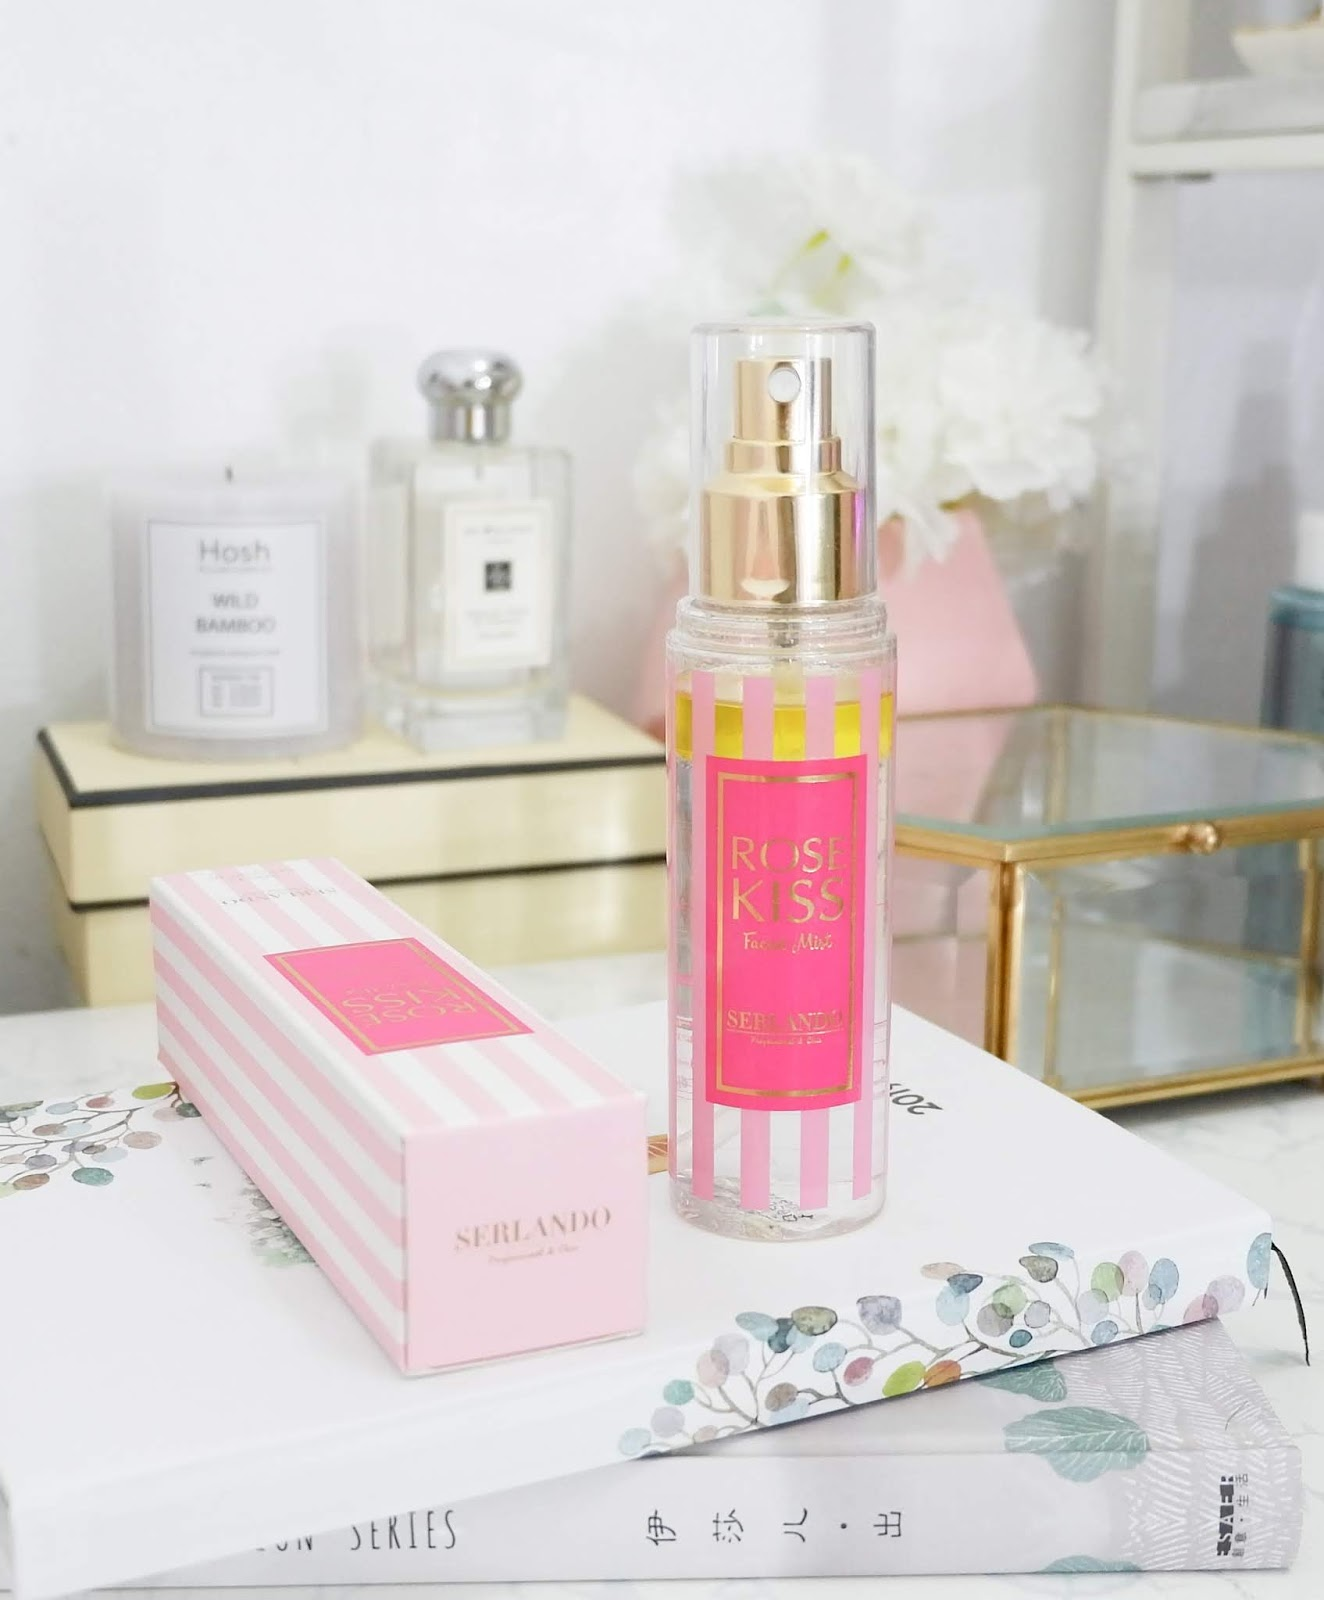 SERLANDO ROSE KISS FACIAL MIST REVIEW PH